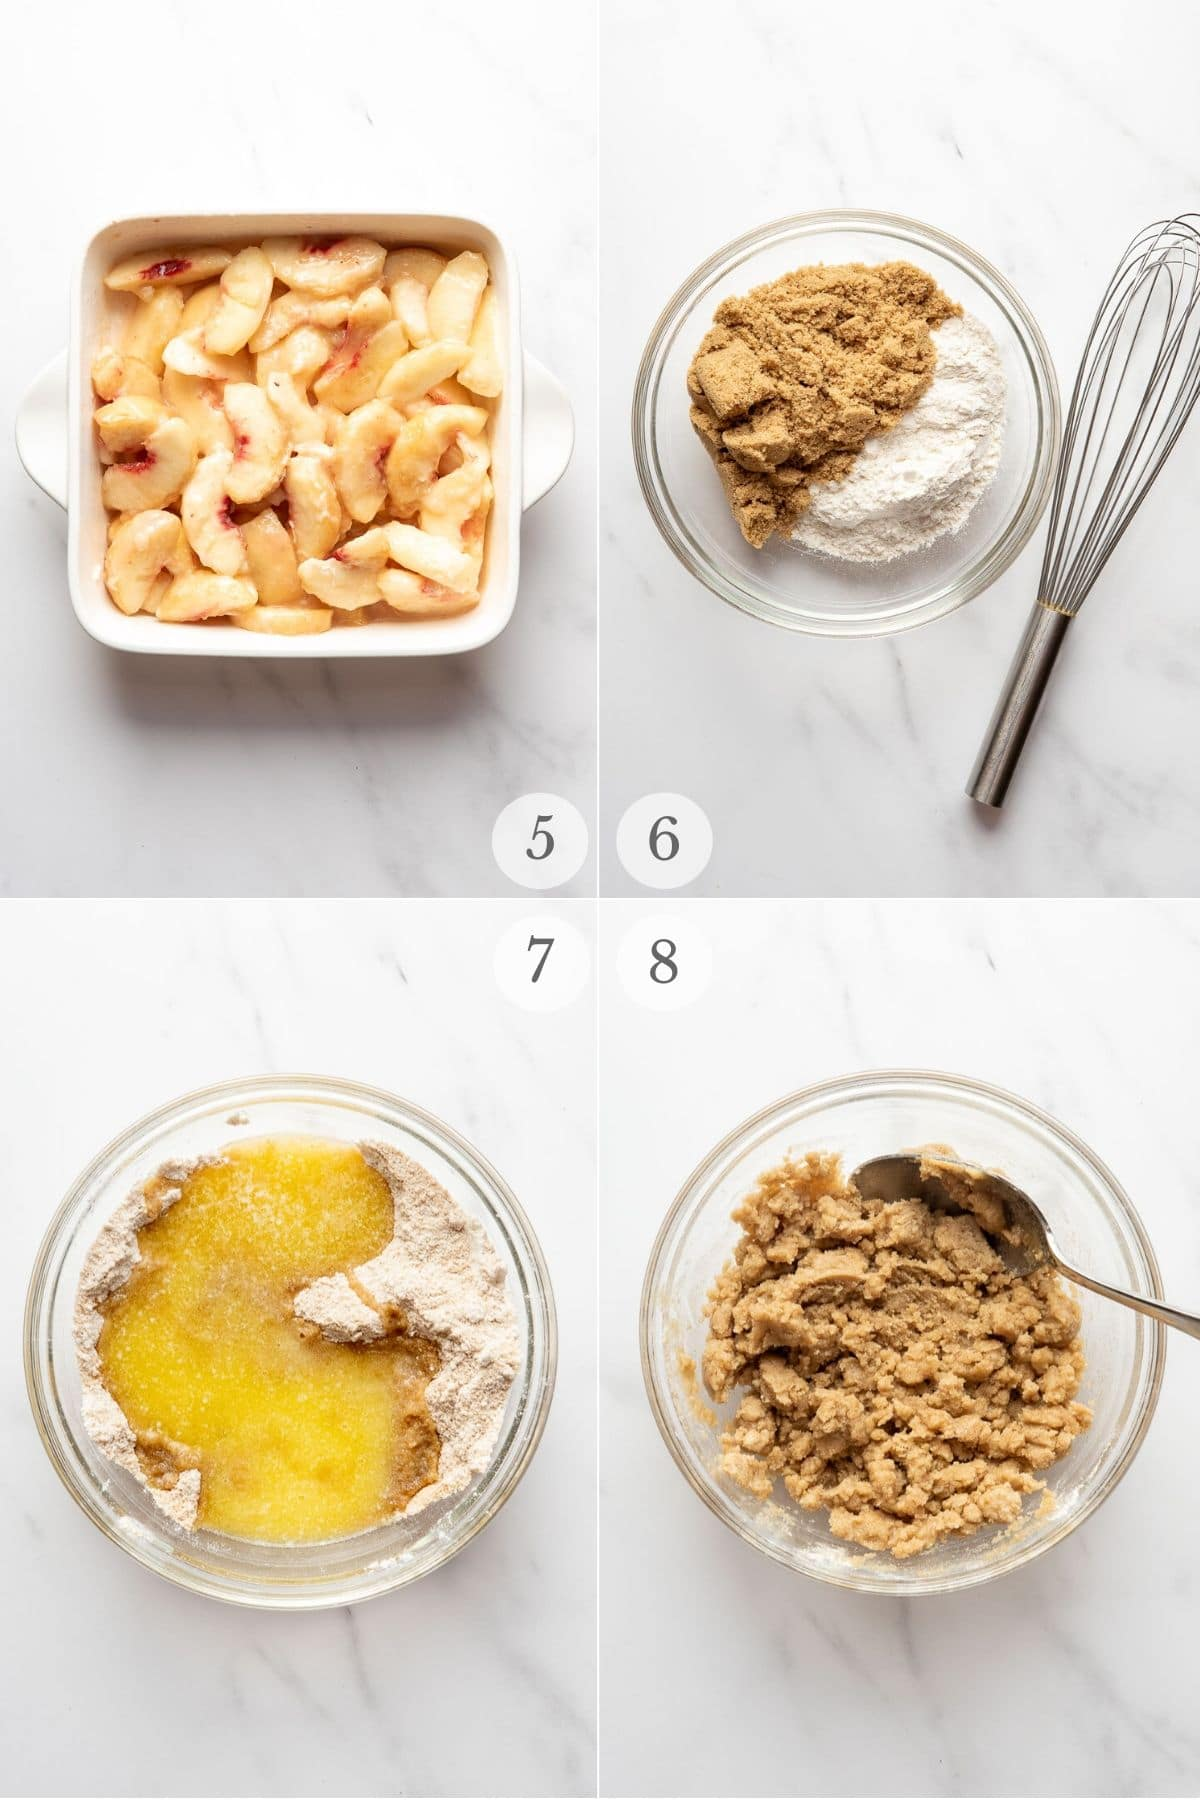 peach crumble recipe steps collage: preparing the topping